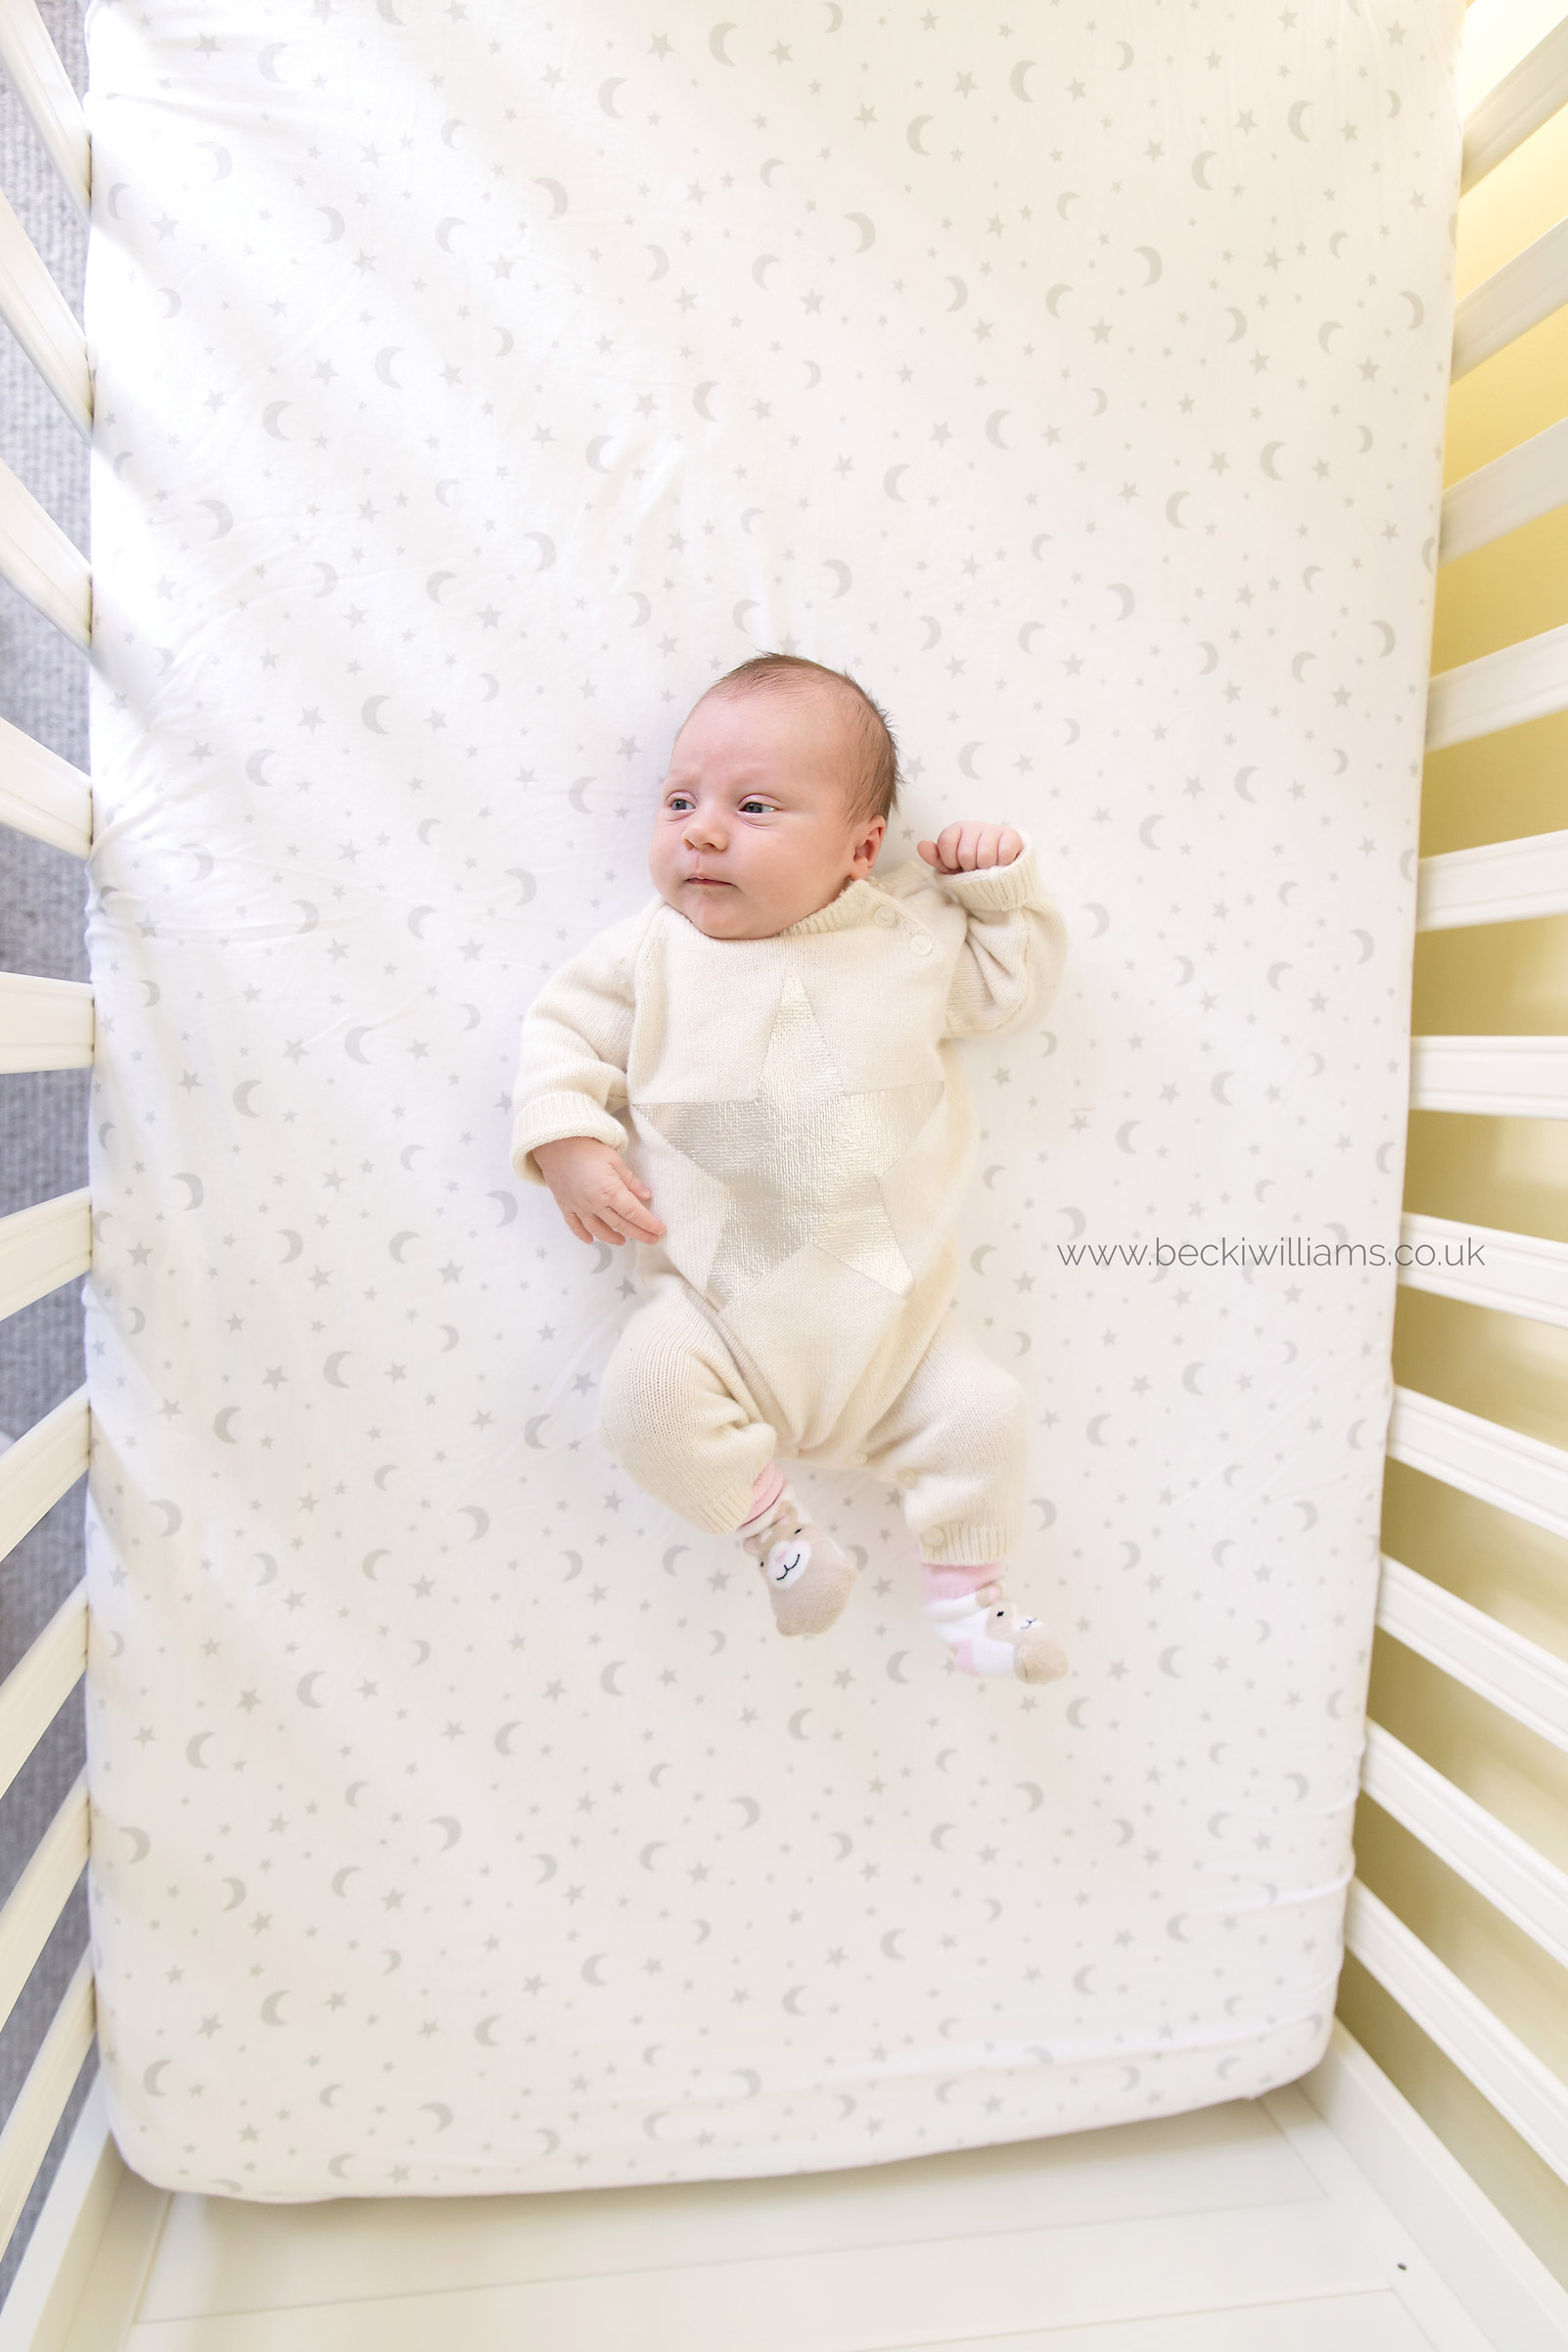 newborn baby girl looks tiny in her large white cot - becki williams photography